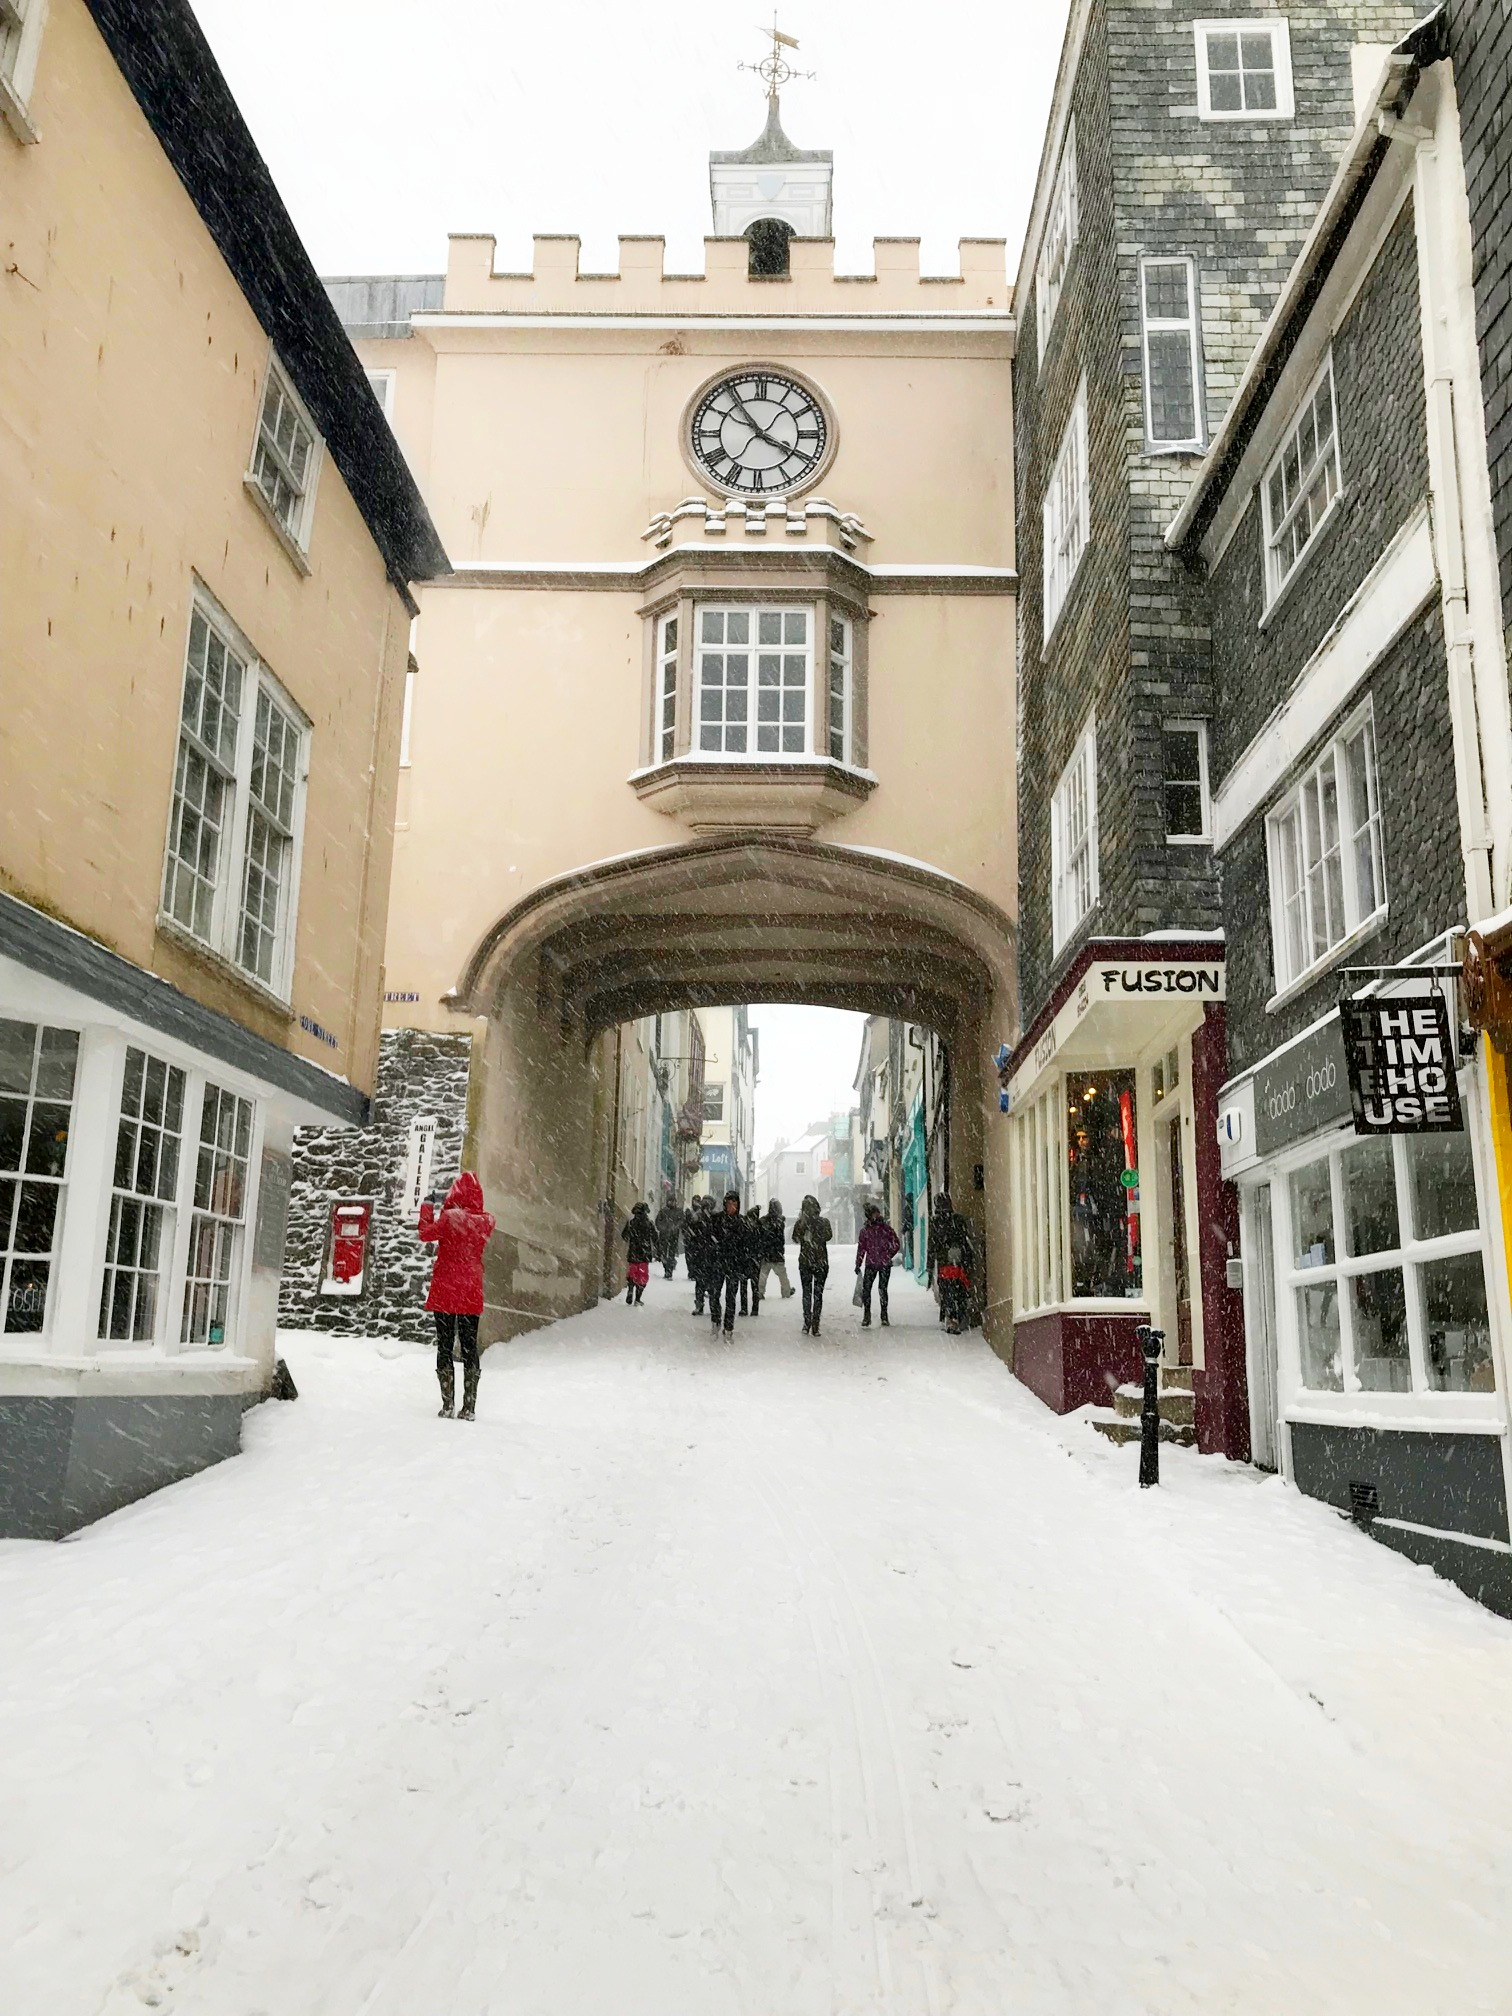 totnes snow scene at christmas